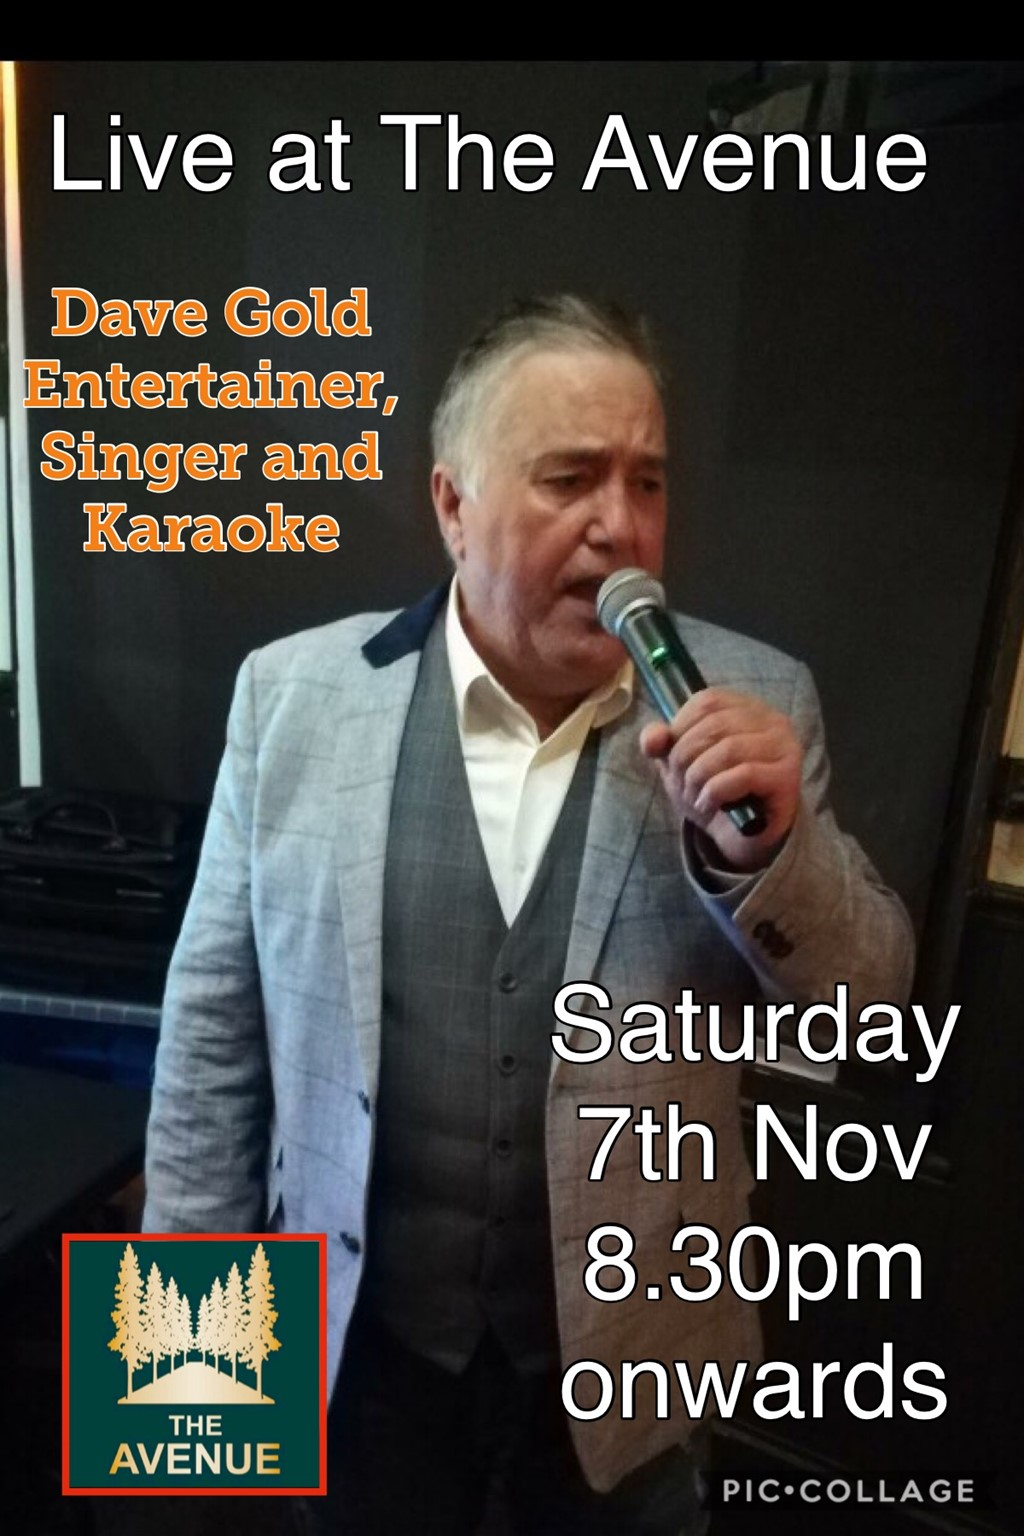 Dave Gold is back!